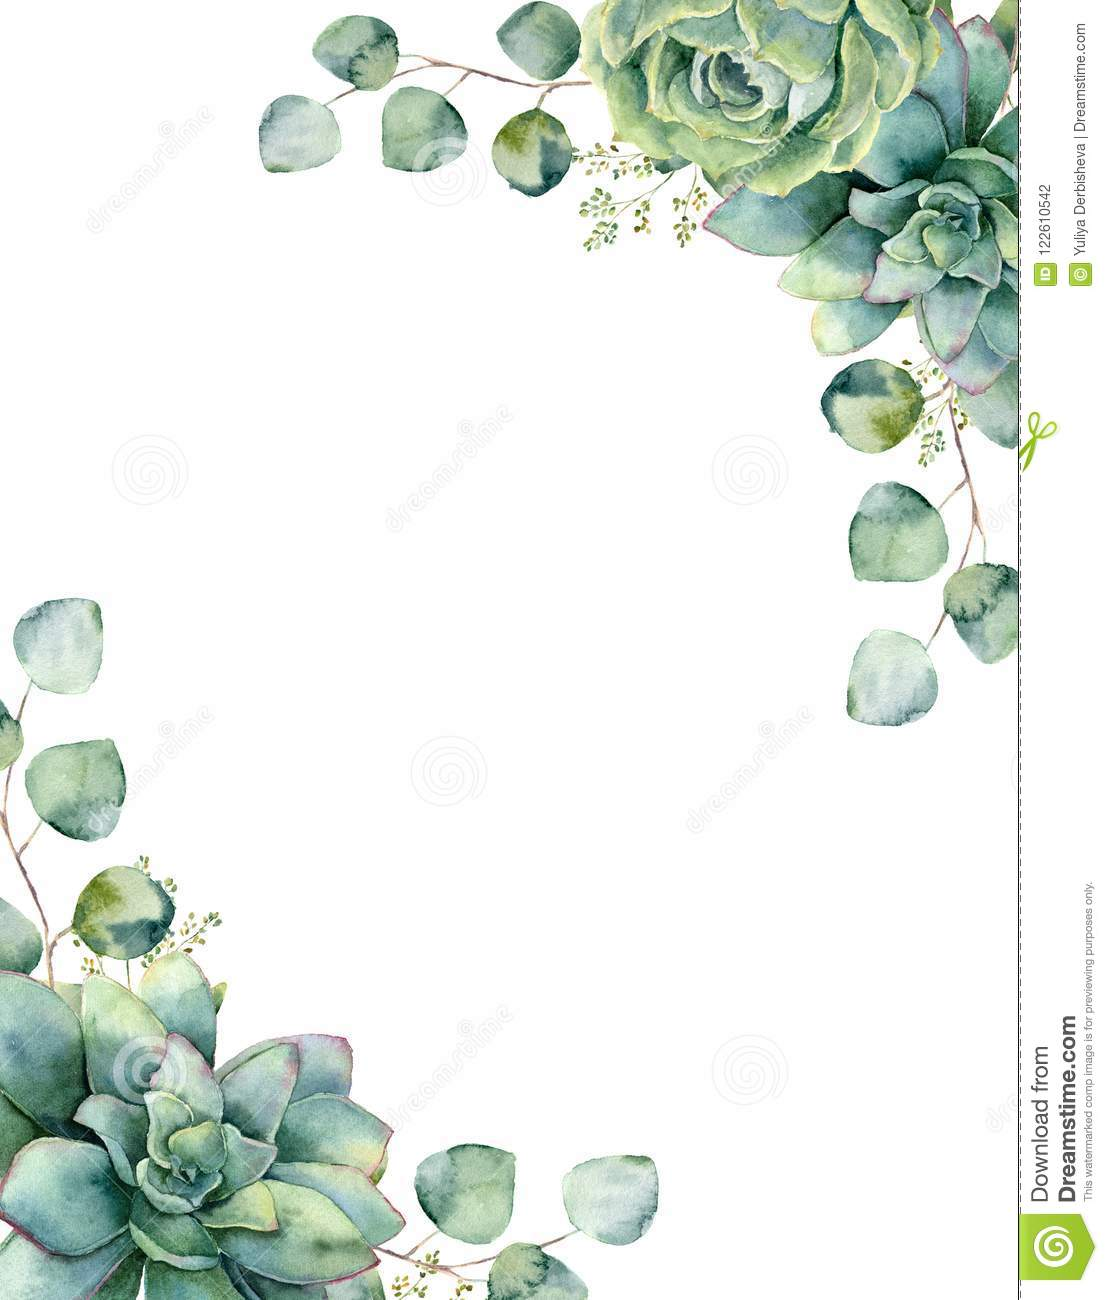 Watercolor card with exotic bouquet. Hand painted eucalyptus branch and leaves, green succulents isolated on white